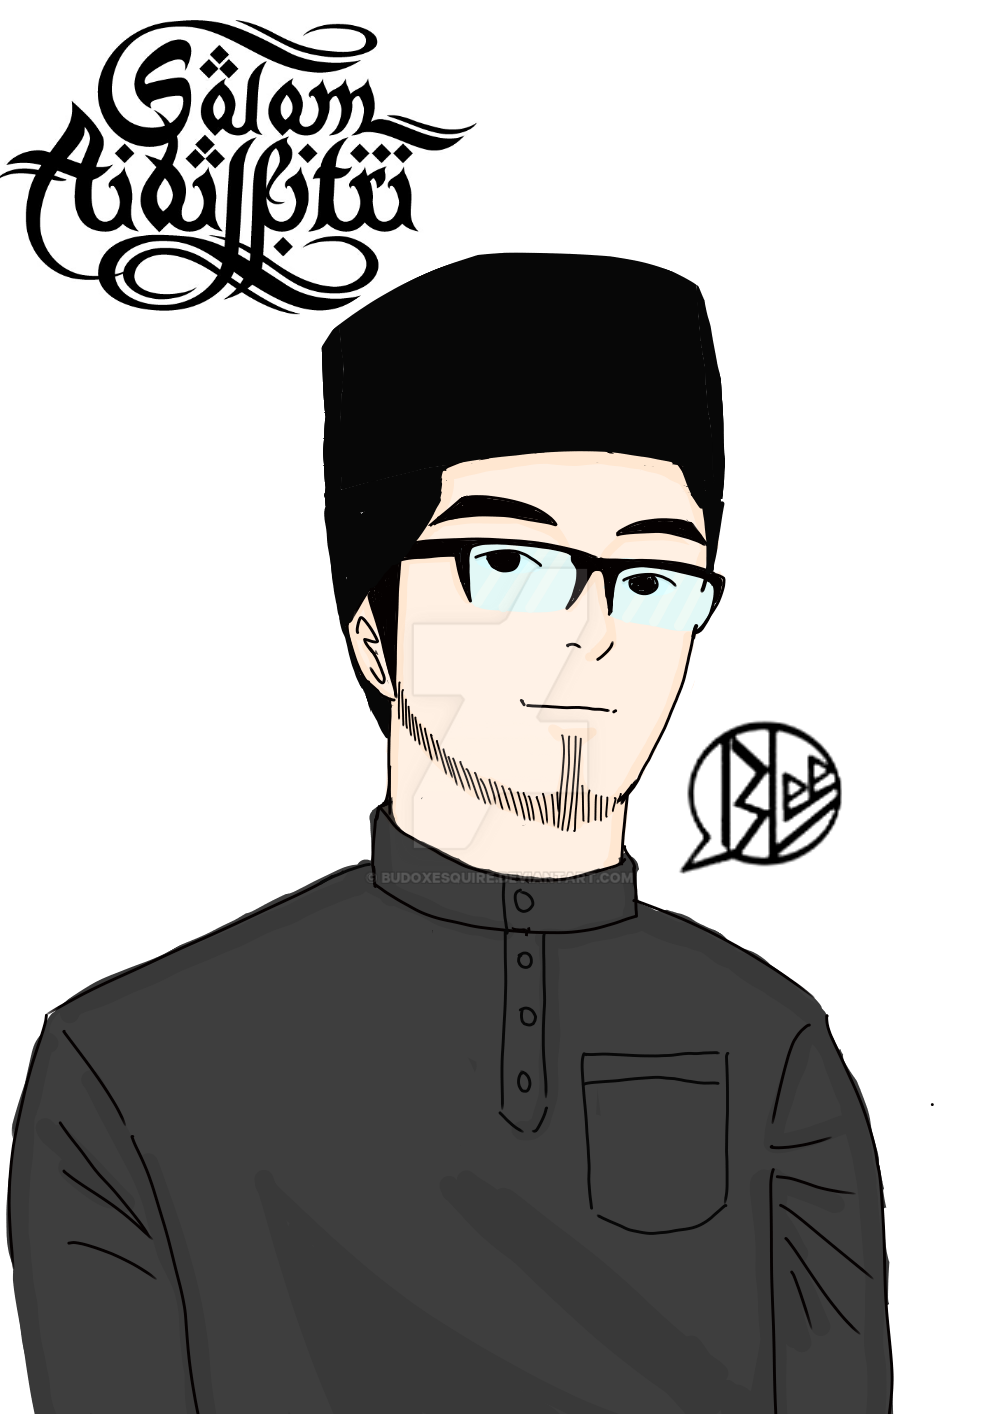 salam aidilfitri 1437 by budoxesquire